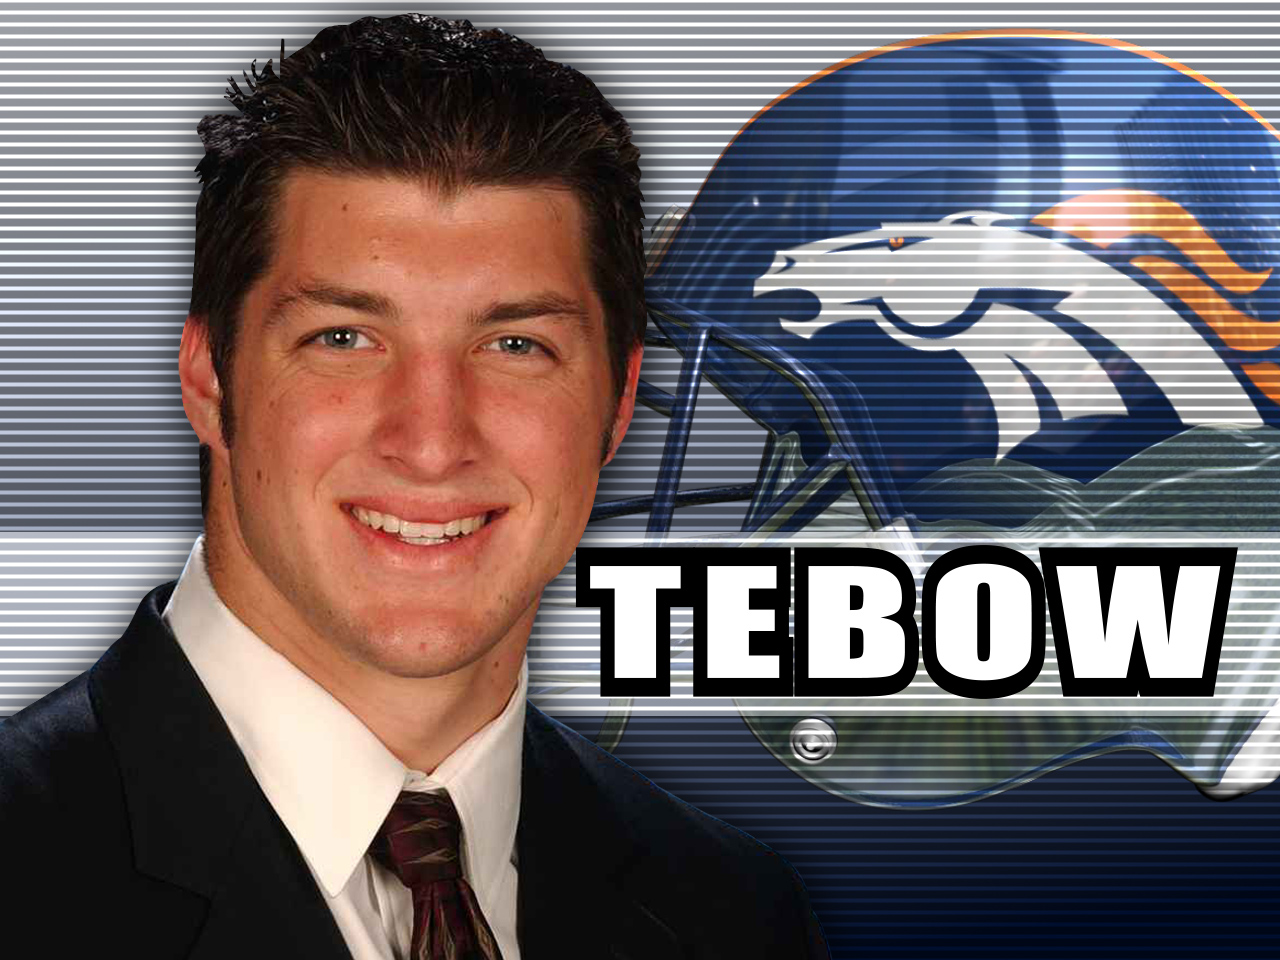 Former Gator QB Tebow signs with Broncos | WBRZ News 2 Louisiana : Baton Rouge, LA |